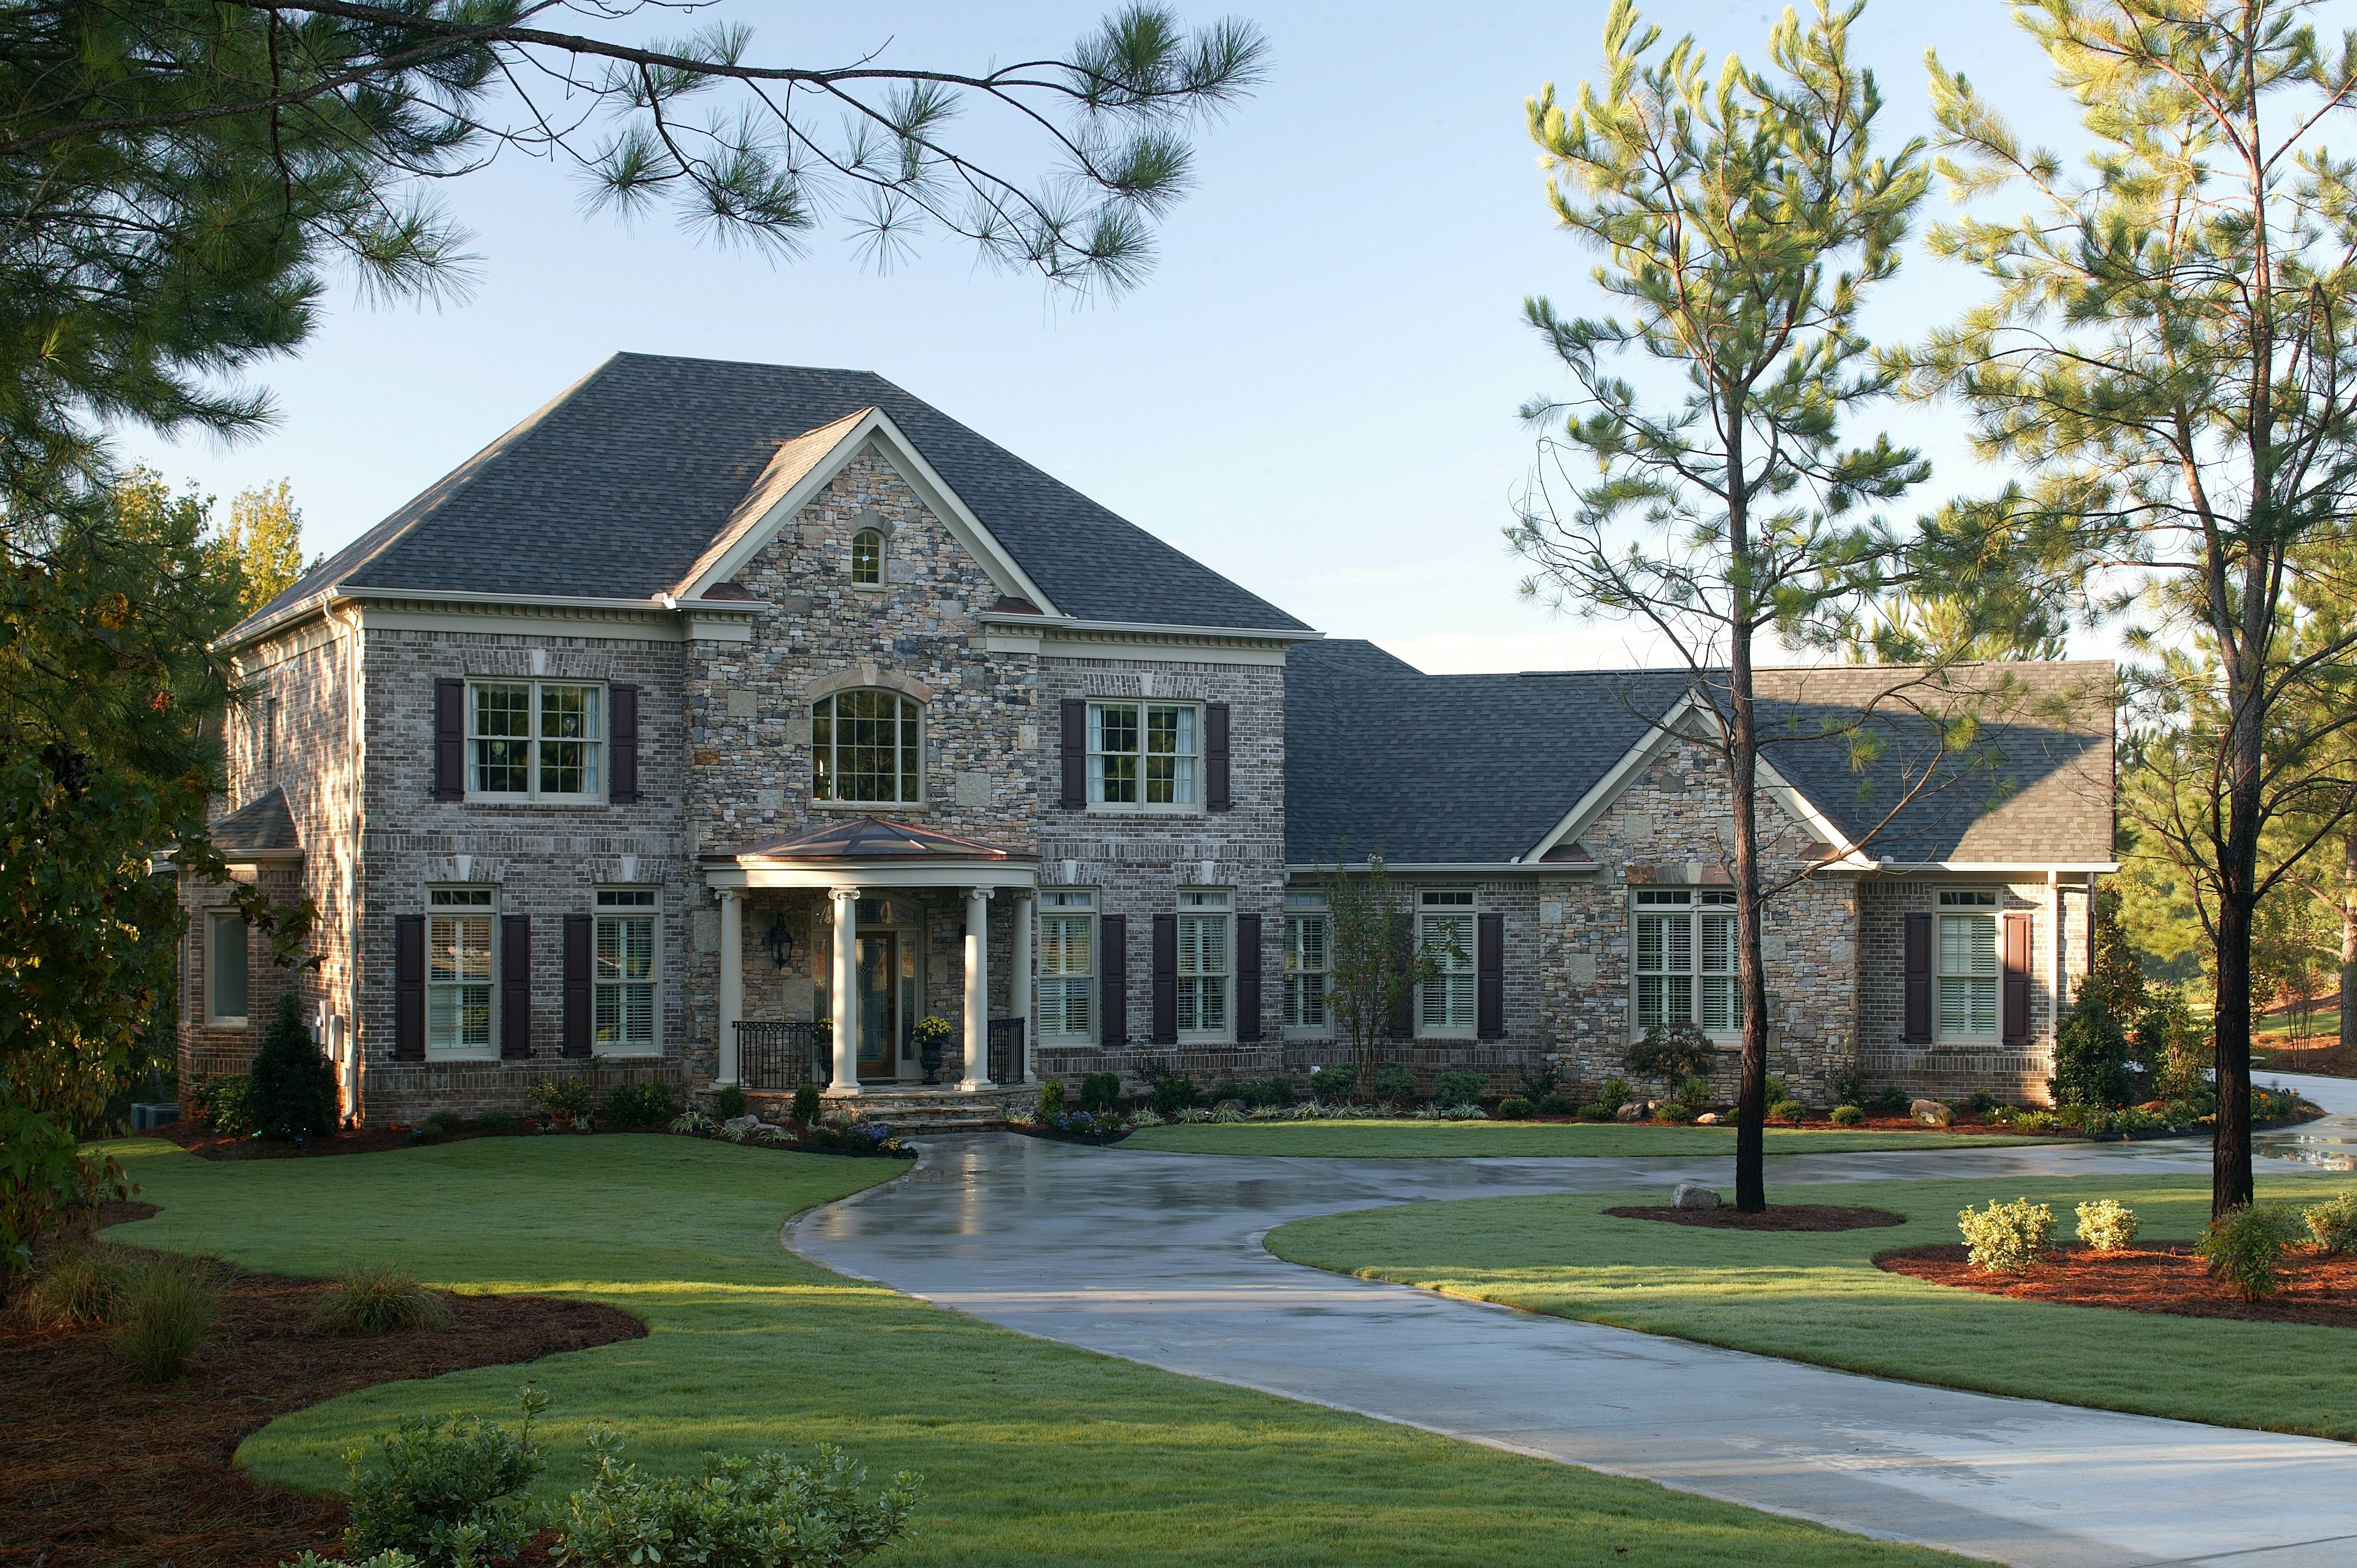 Roof Repair Cost Estimates Flat Rubber Tile Slate Metal More Front View Of House Roof Repair Cost Roof Architecture